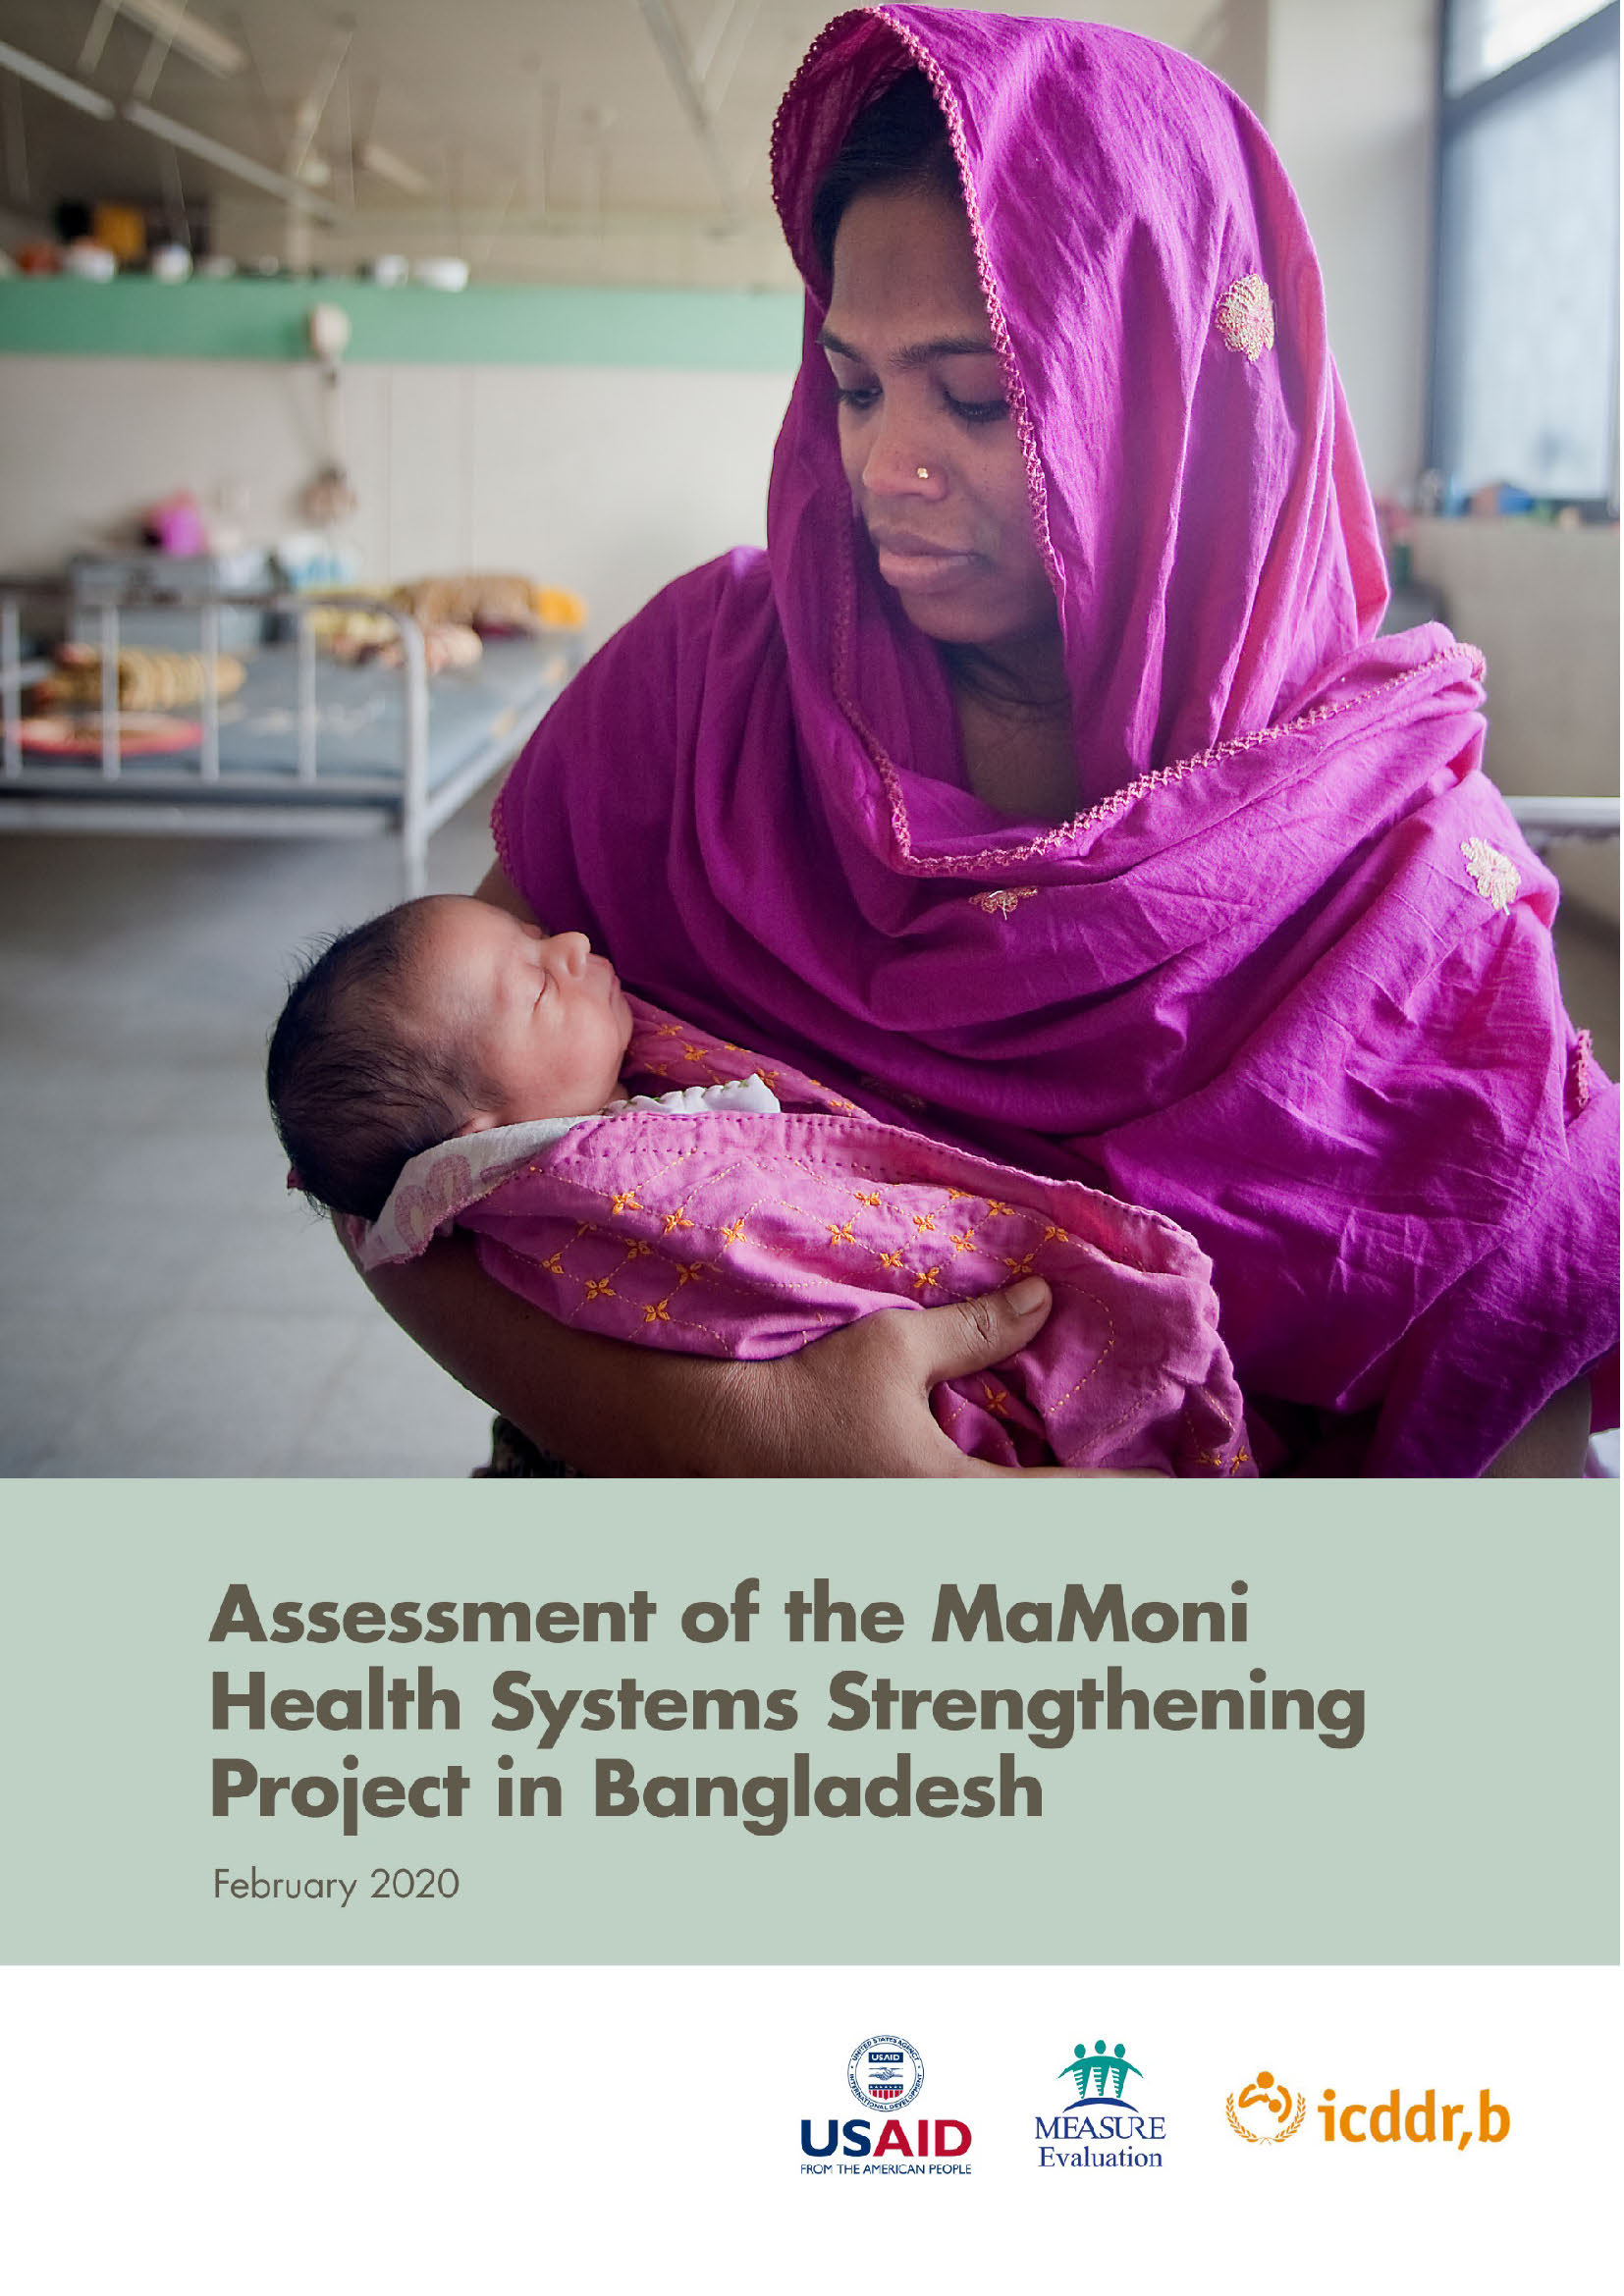 Assessment of the MaMoni Health Systems Strengthening Project